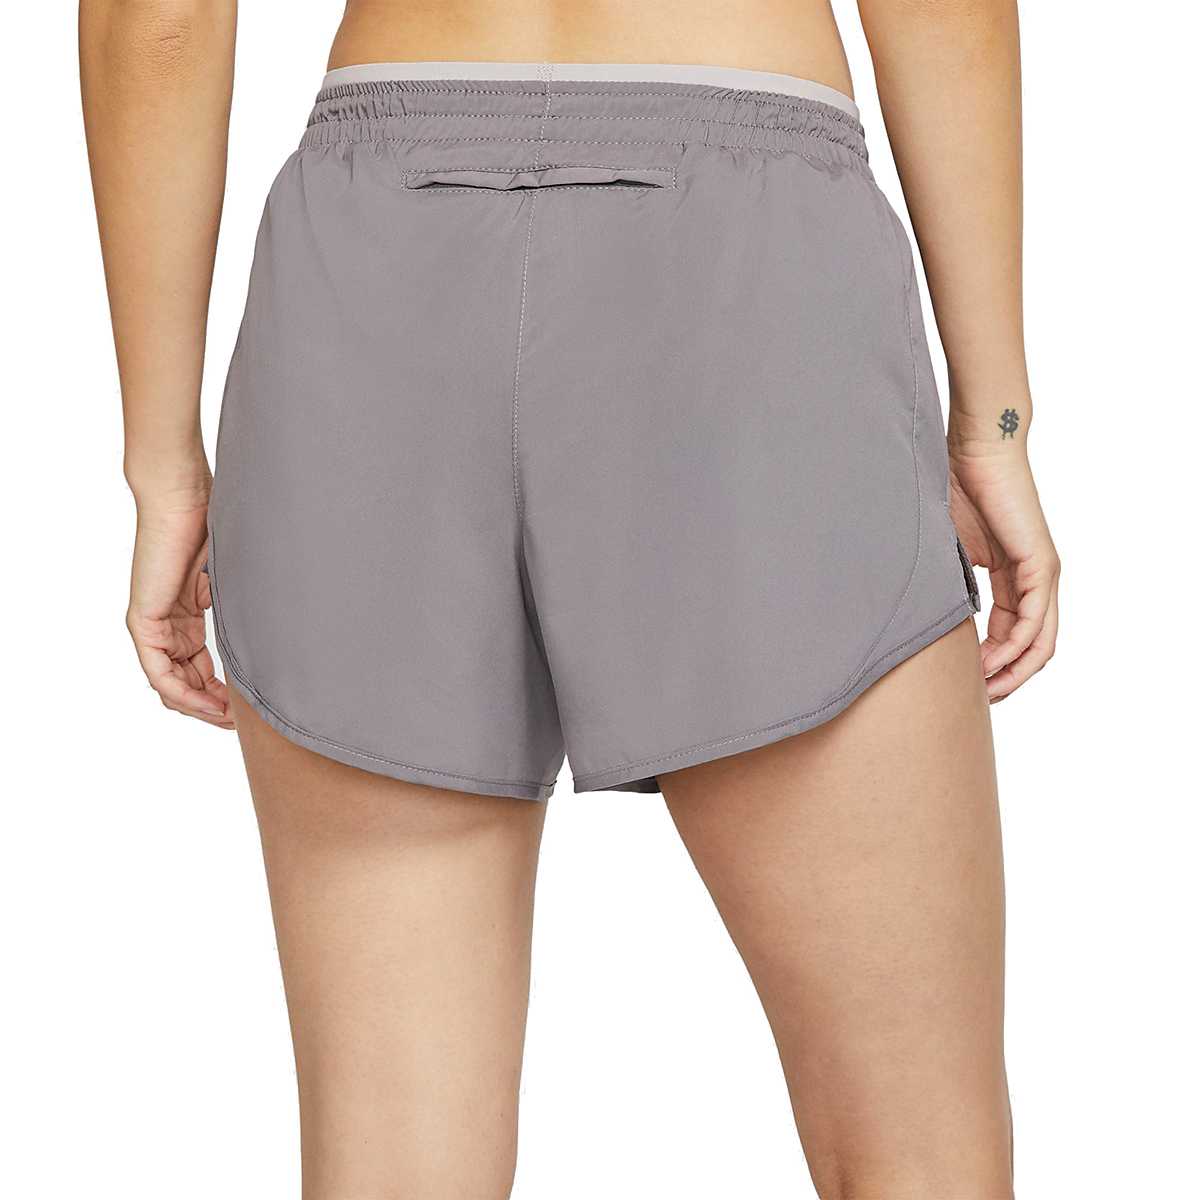 Women's Nike Tempo Luxe 3in Shorts - Color: Gunsmoke/Atmosphere Grey - Size: XS, Gunsmoke/Atmosphere Grey, large, image 2